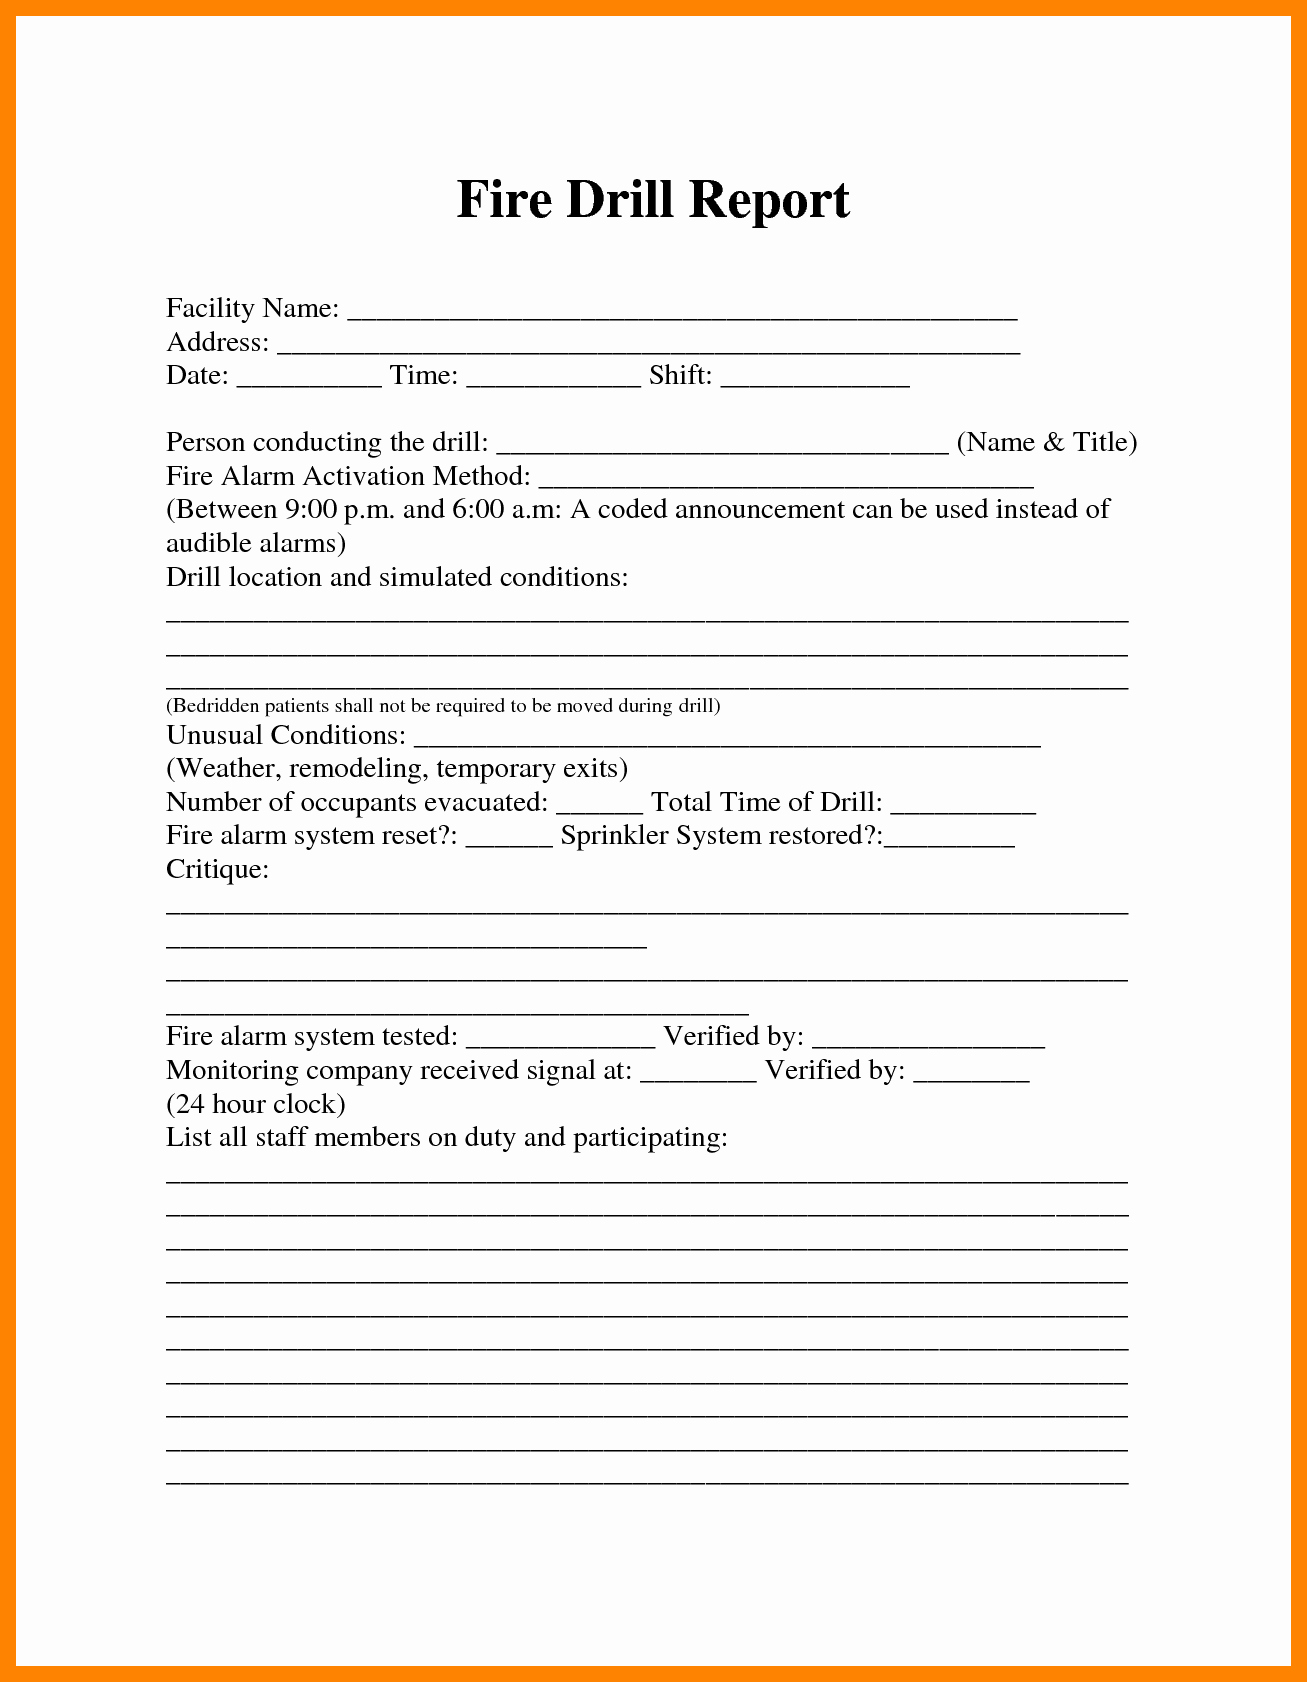 Fire Drill Report Sample Best Of Image Result for Fire Drill Procedures for Summer Camp